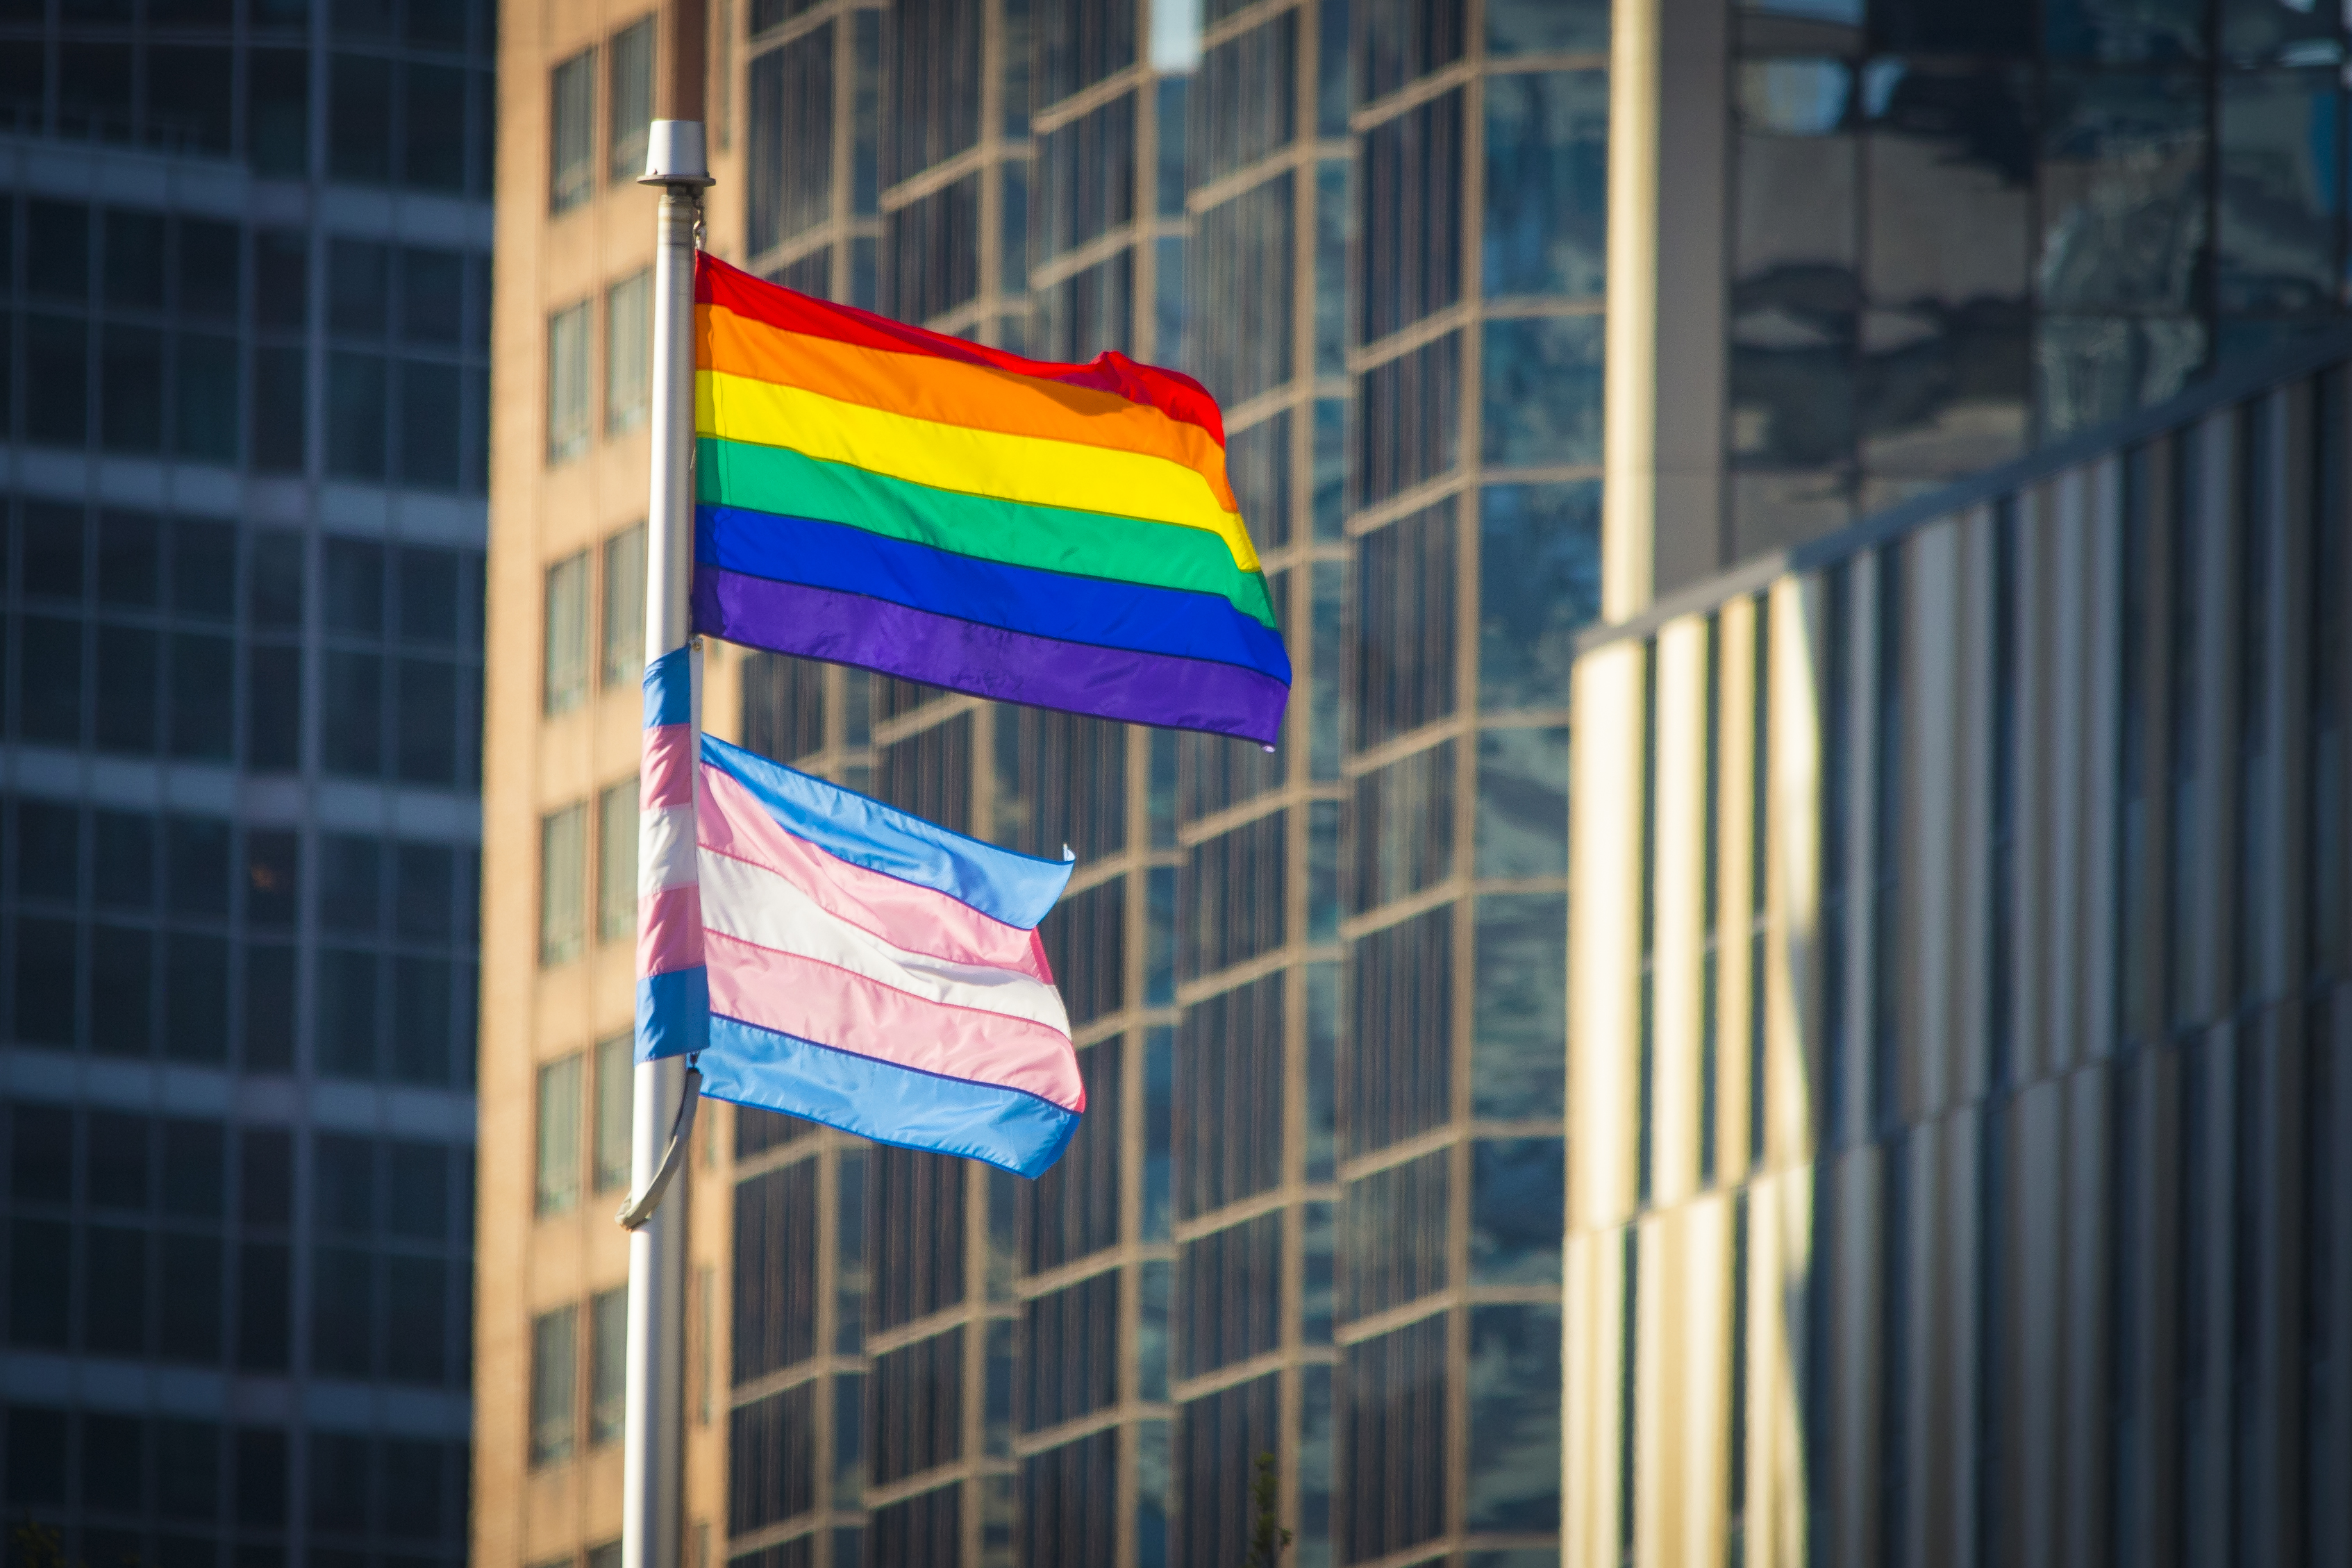 Pride and Trans Flag waving in the wind in a downtown urban setting.  Office buildings can be seen behind.